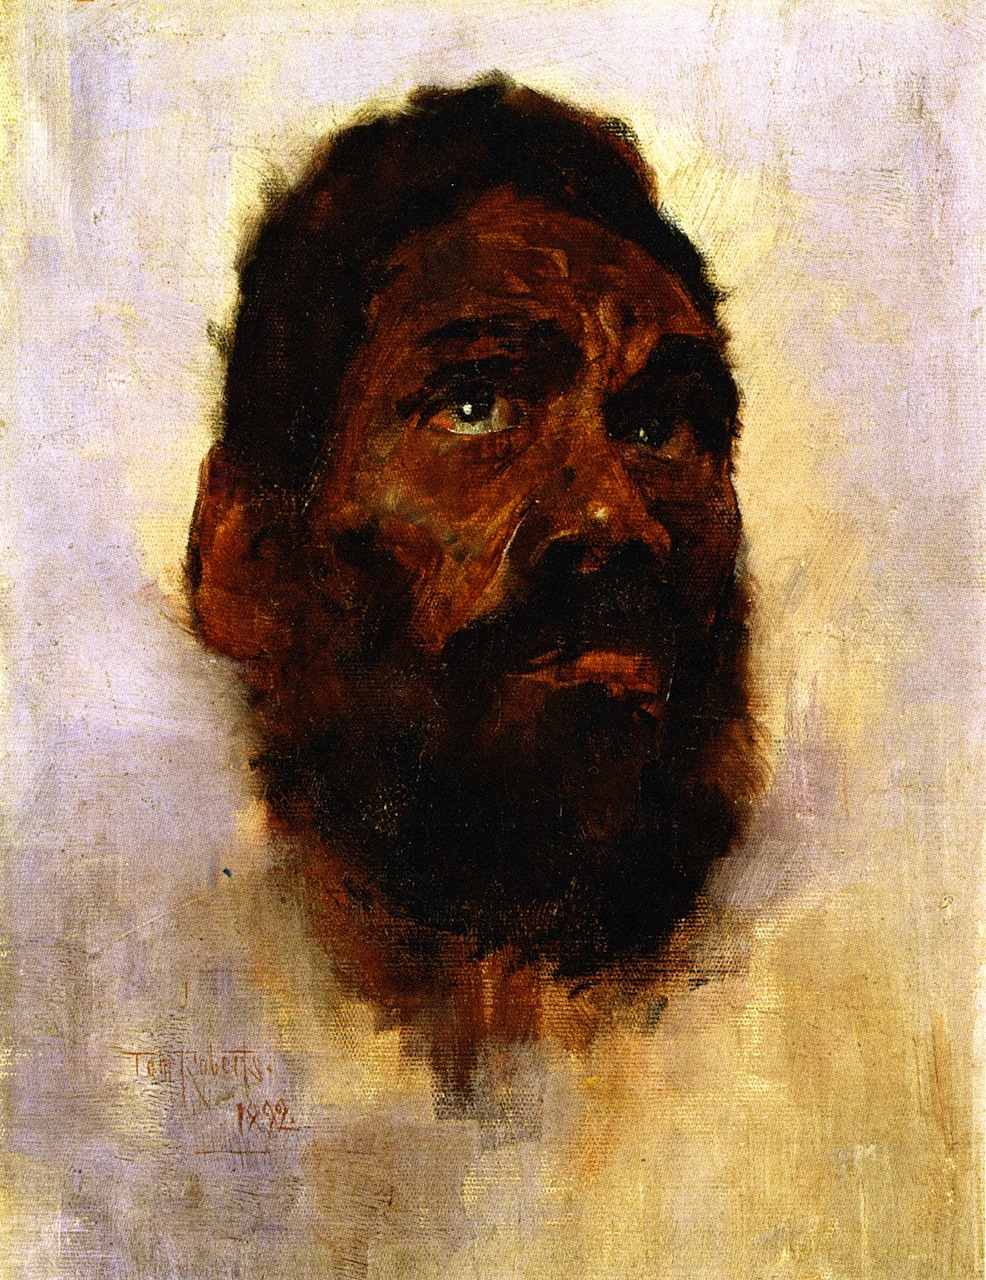 Aboriginal Head - Charlie Turner, 1892